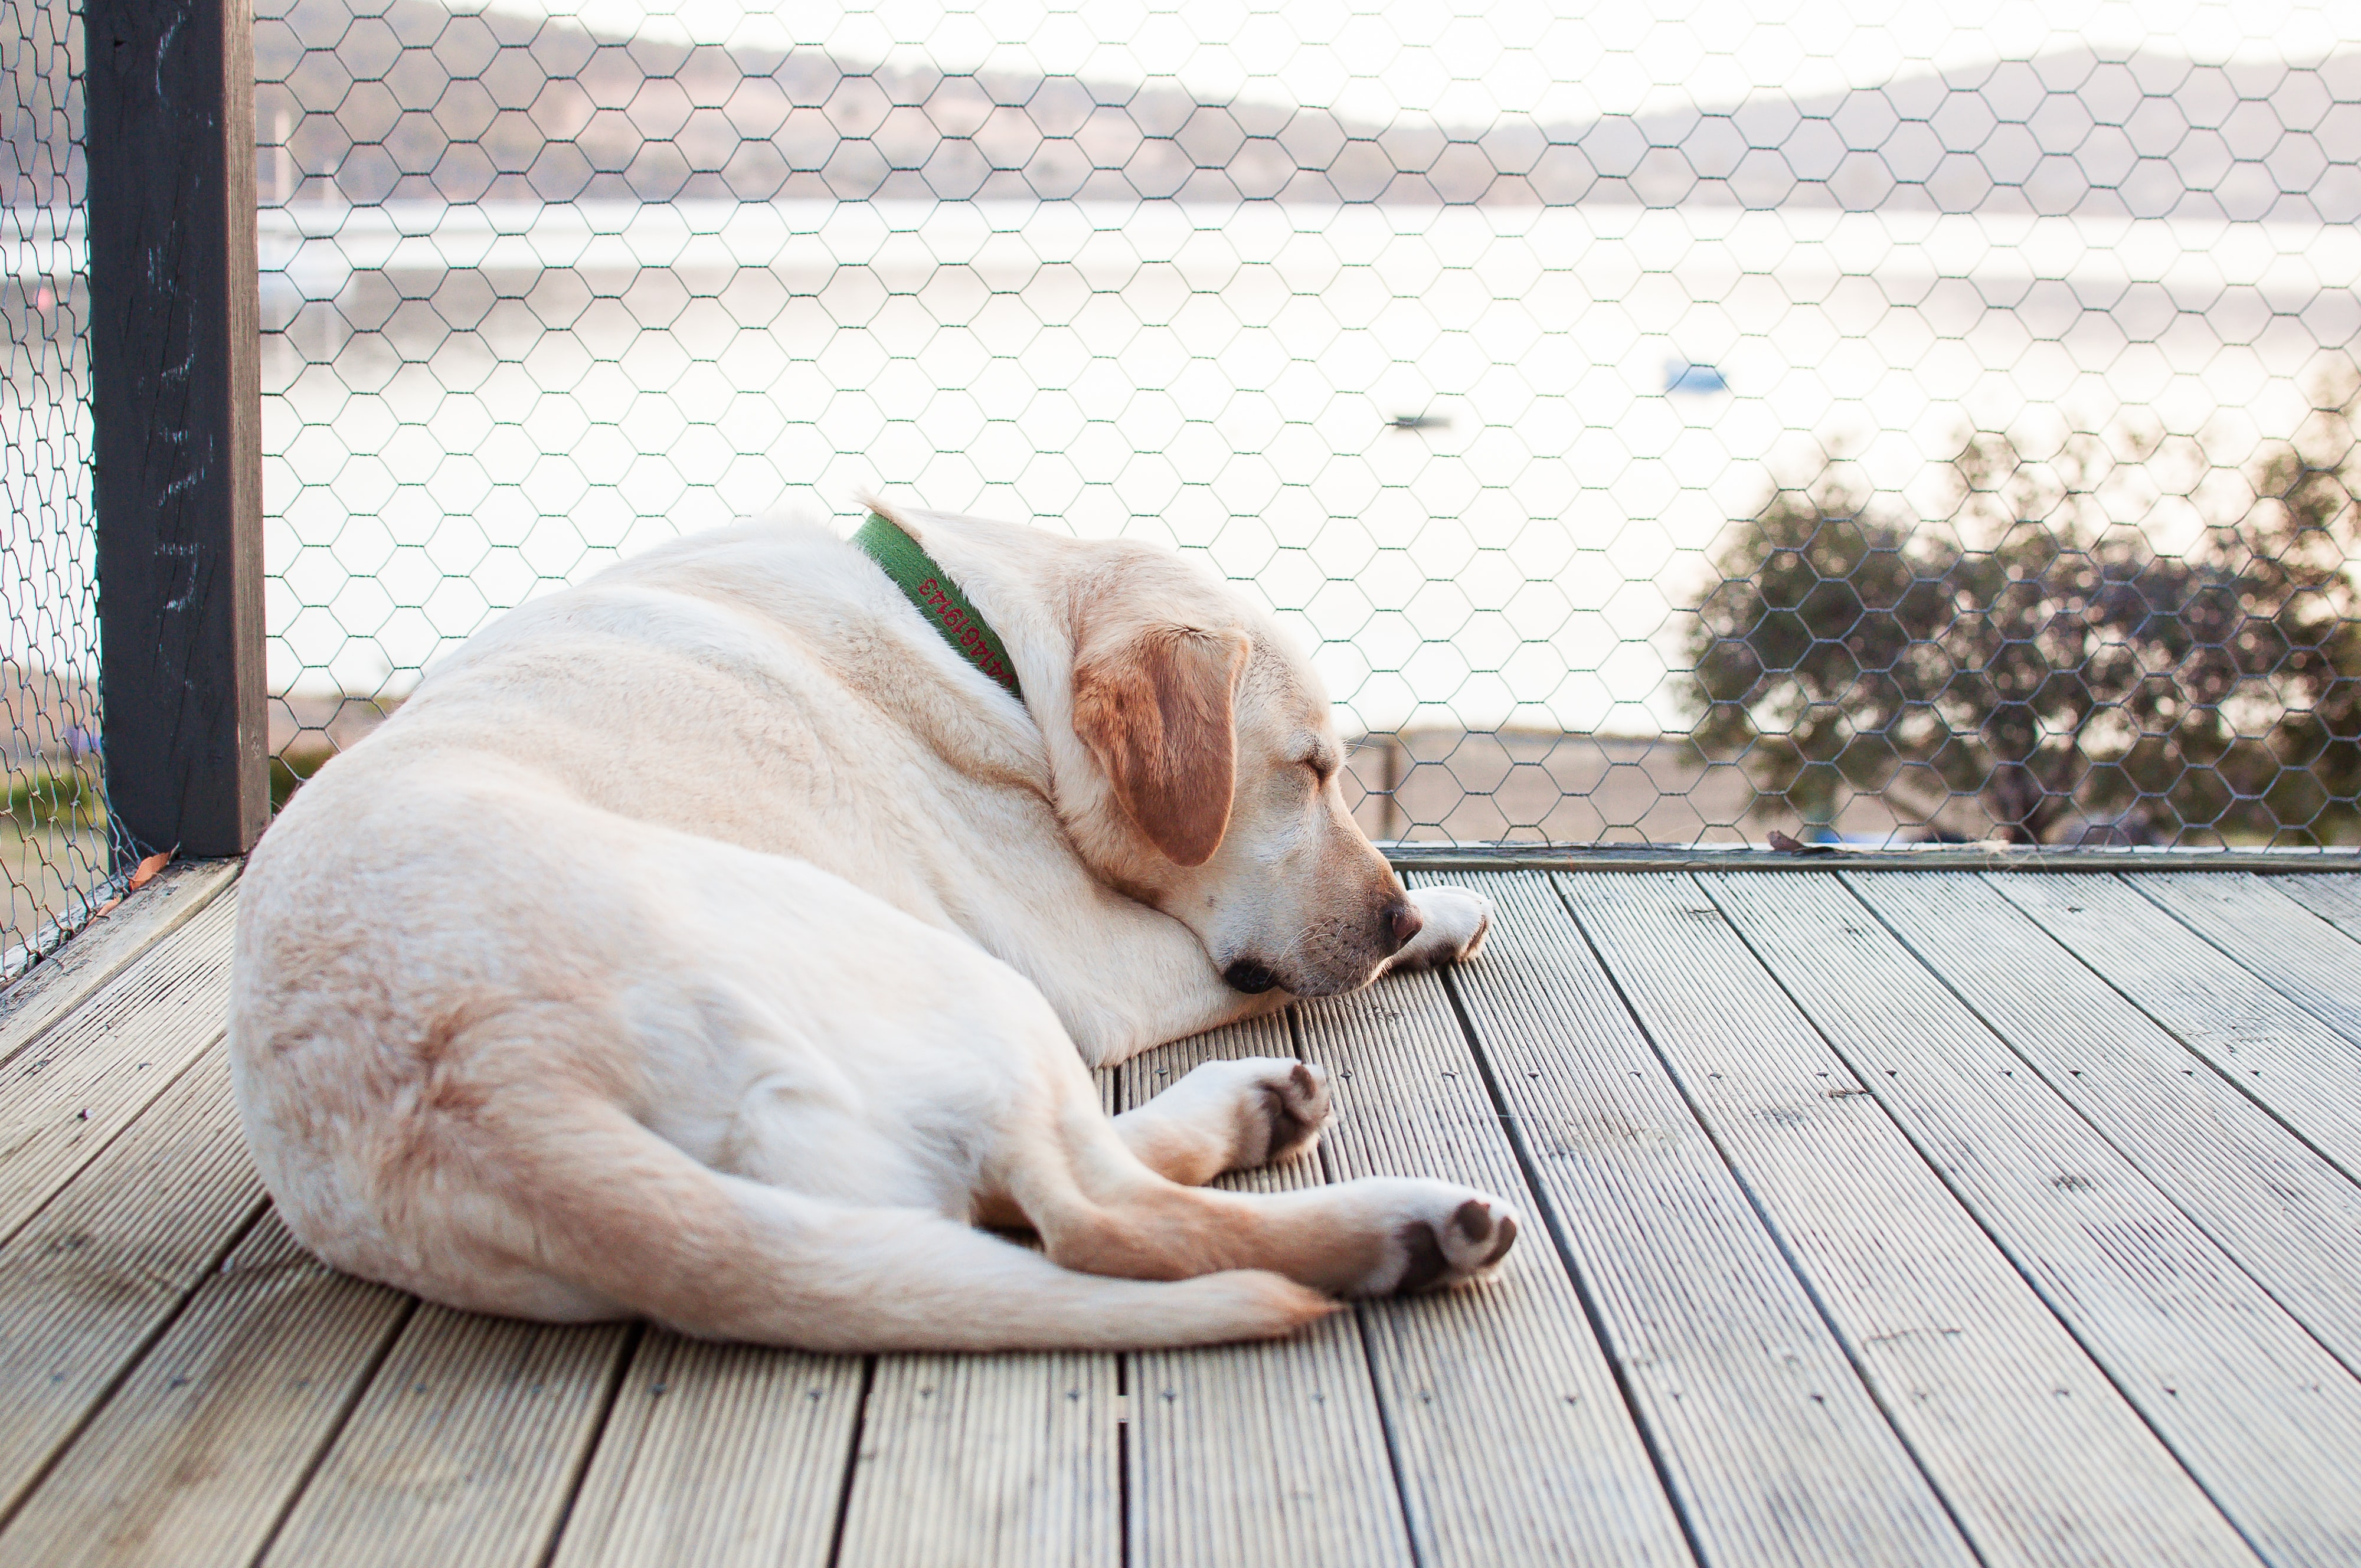 short-coated white dog sleeping on brown wooden dock during daytime